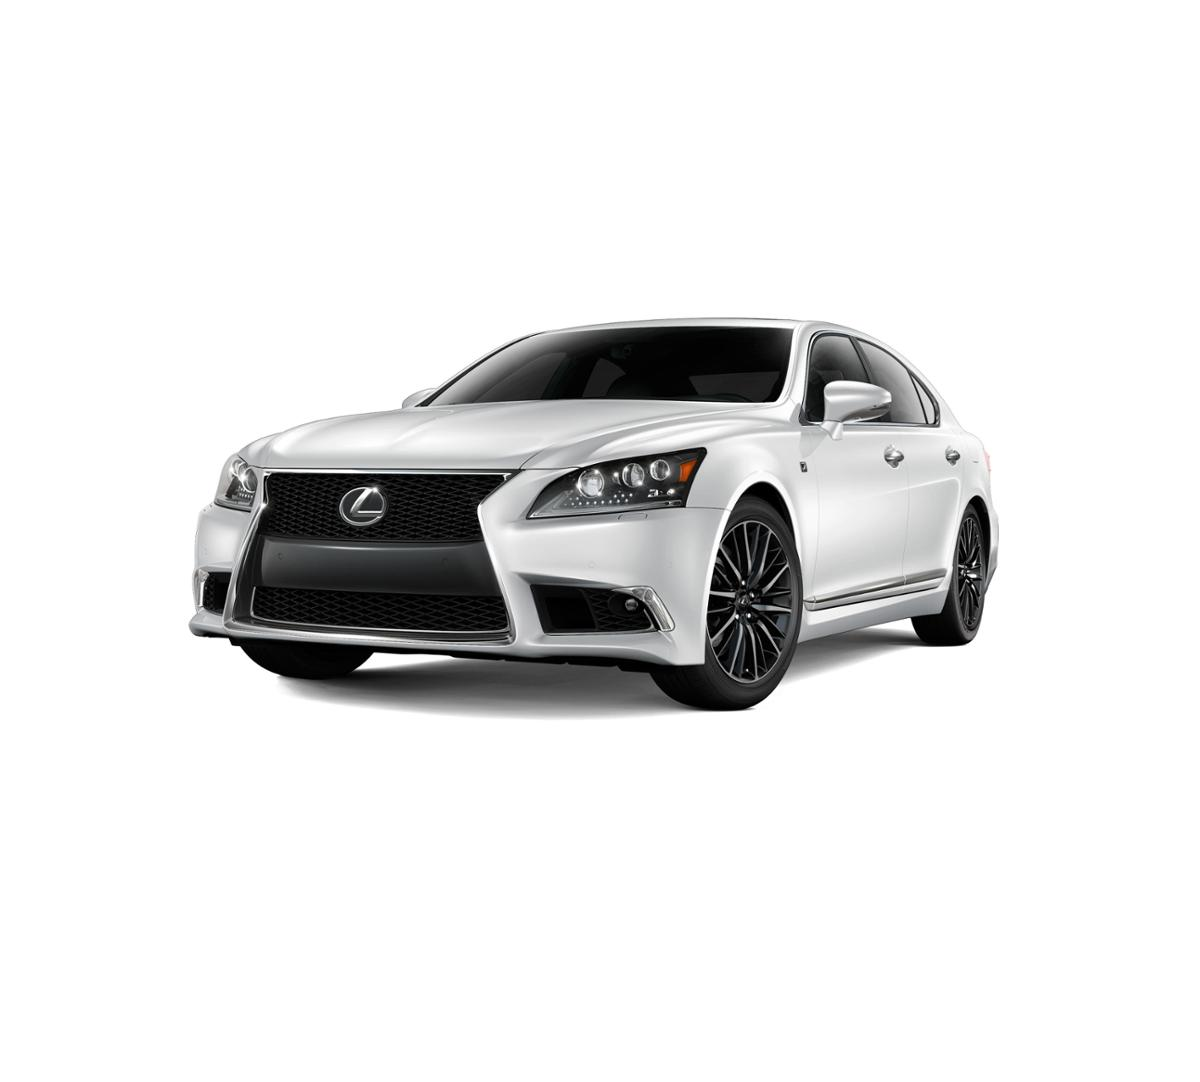 2017 ultra white f sport lexus ls 460 for sale in ontario jthbl5ef0h5145207 crown lexus. Black Bedroom Furniture Sets. Home Design Ideas